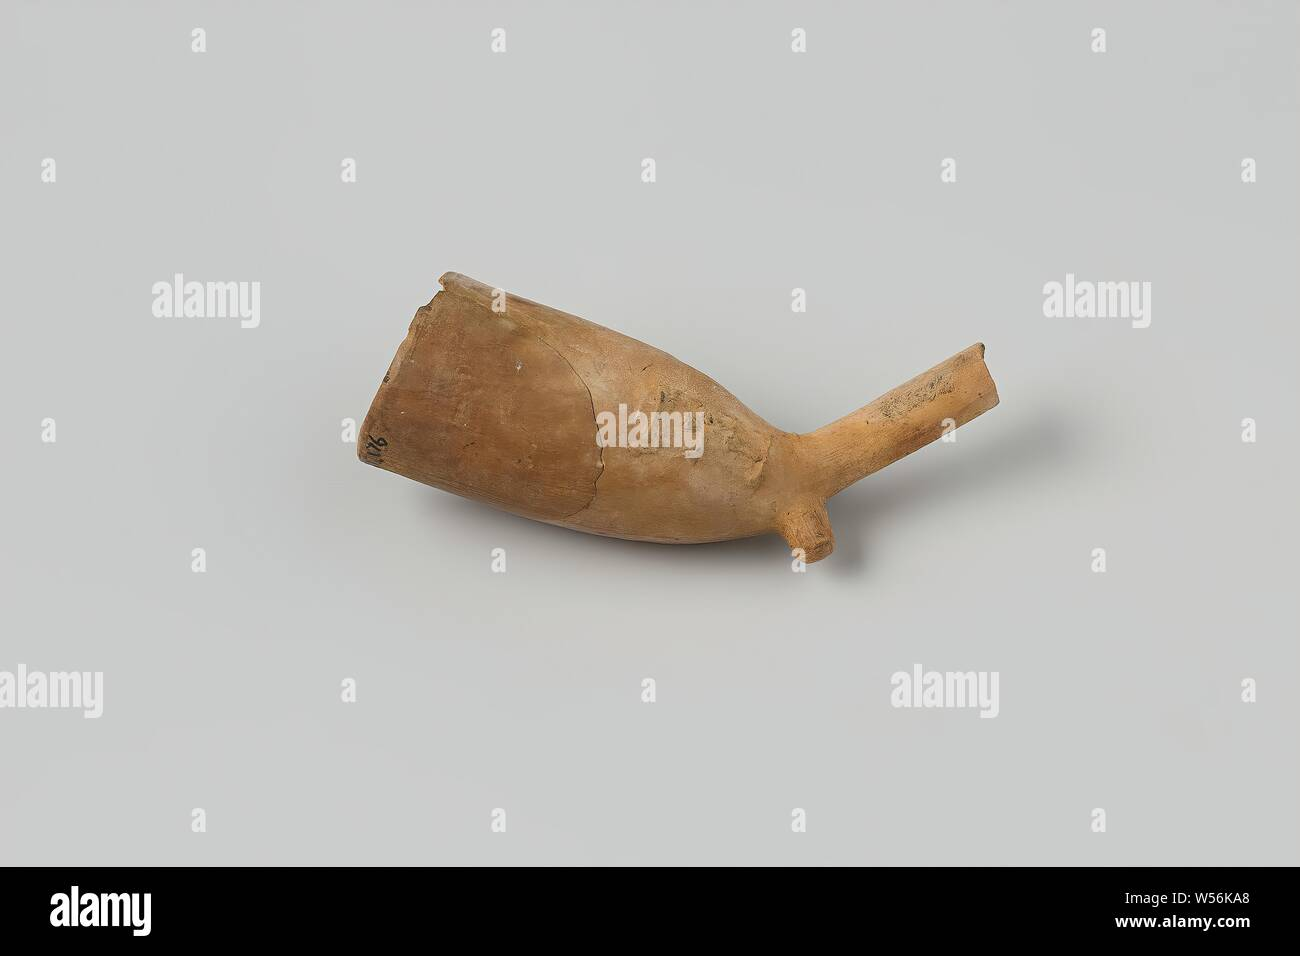 Fragment of a pipe bowl with a piece of stem from the wreck of the East Indiamen Hollandia, Pipe, bowl, bowlmark: sentry, fragm, 2hsm1. Glued, Annet, Dutch East India Company, Hollandia (ship), anonymous, Netherlands, 1700 - in or before 13-Aug-1743, pipe clay, l 6.1 cm × d 2.5 cm Stock Photo